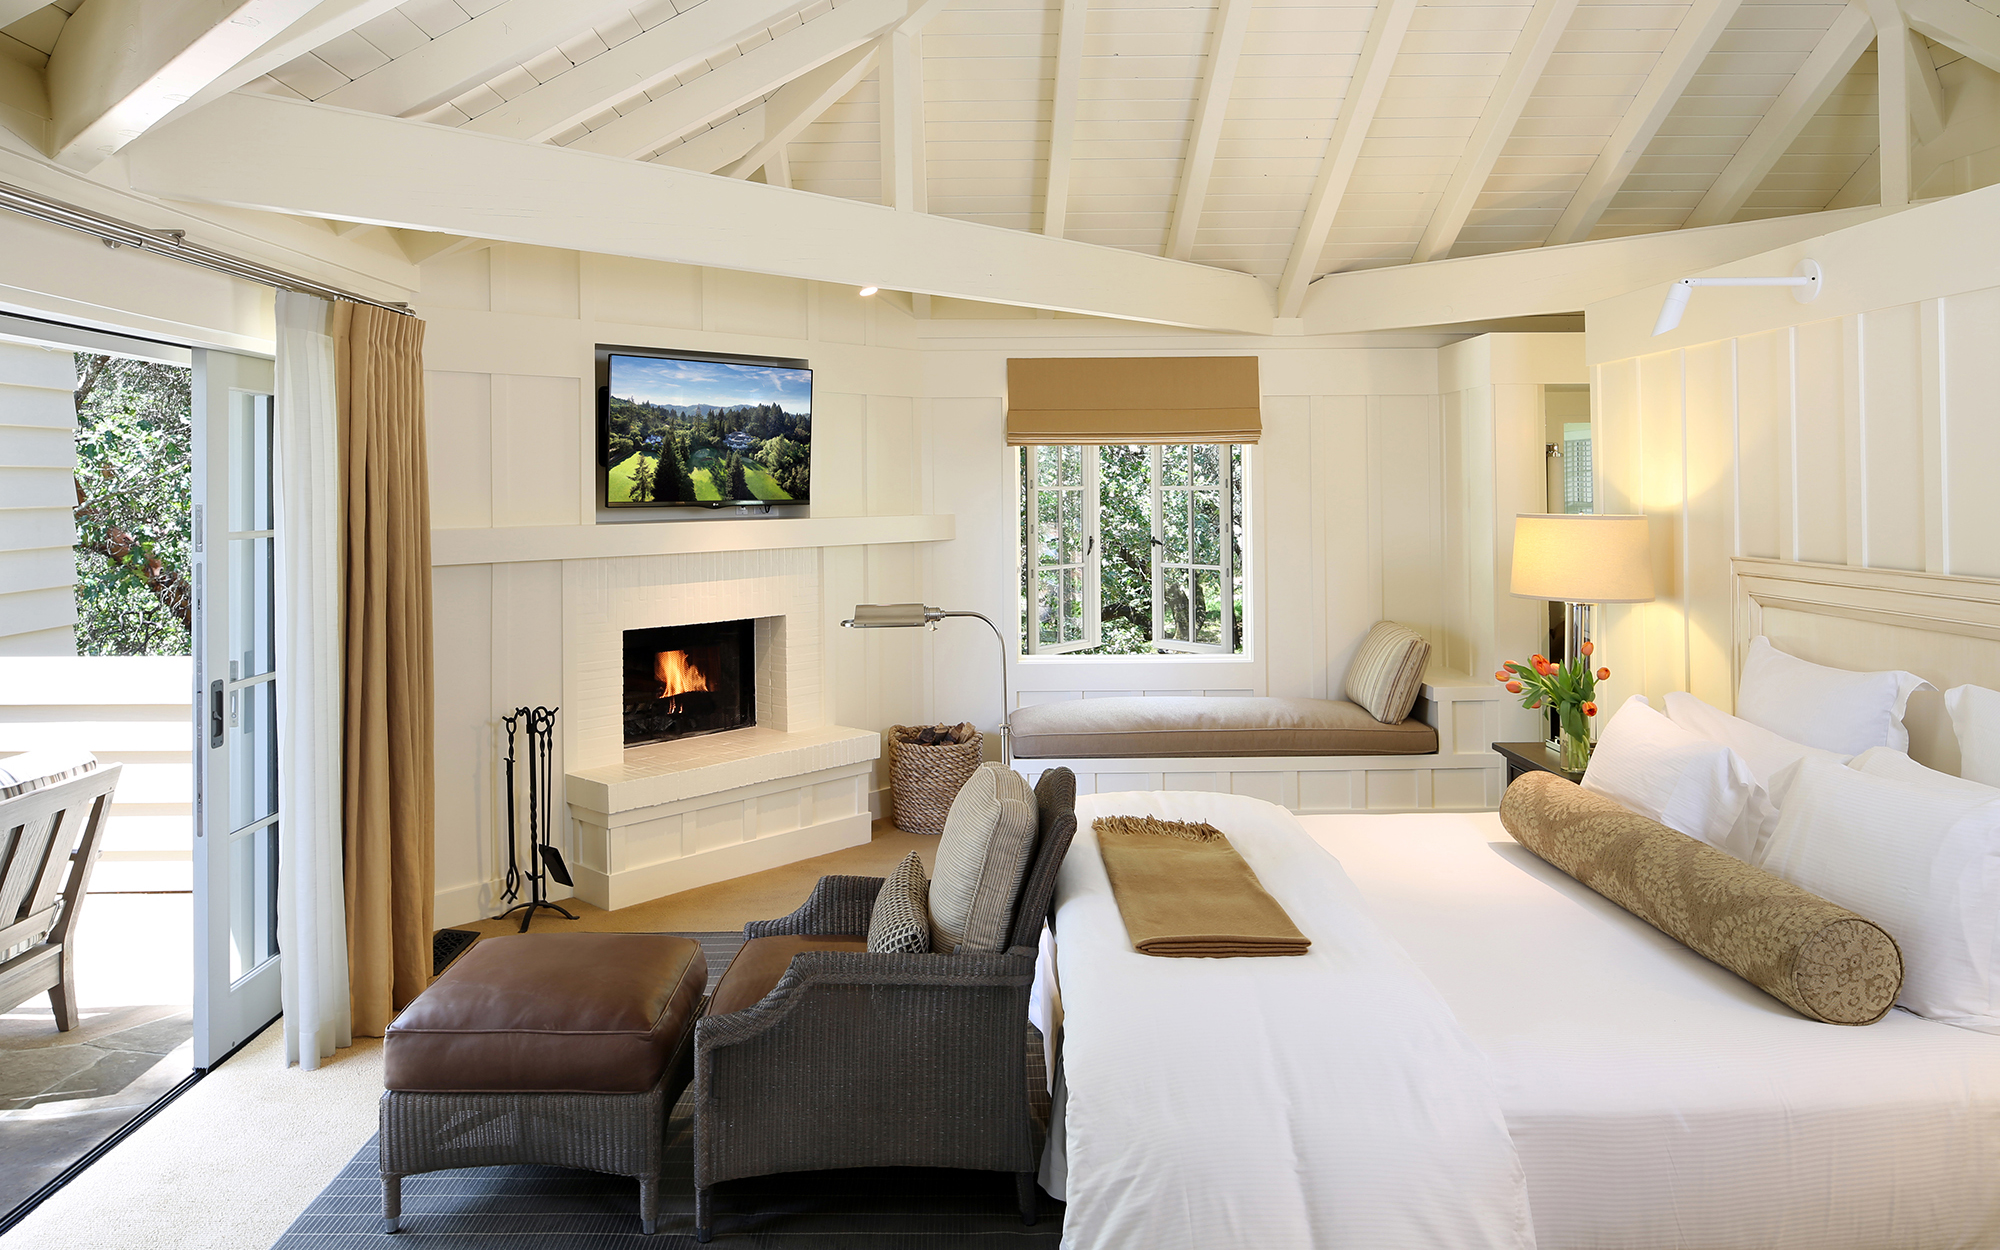 Best Resorts in the Continental U.S.: Meadowood Napa Valley, St. Helena, California